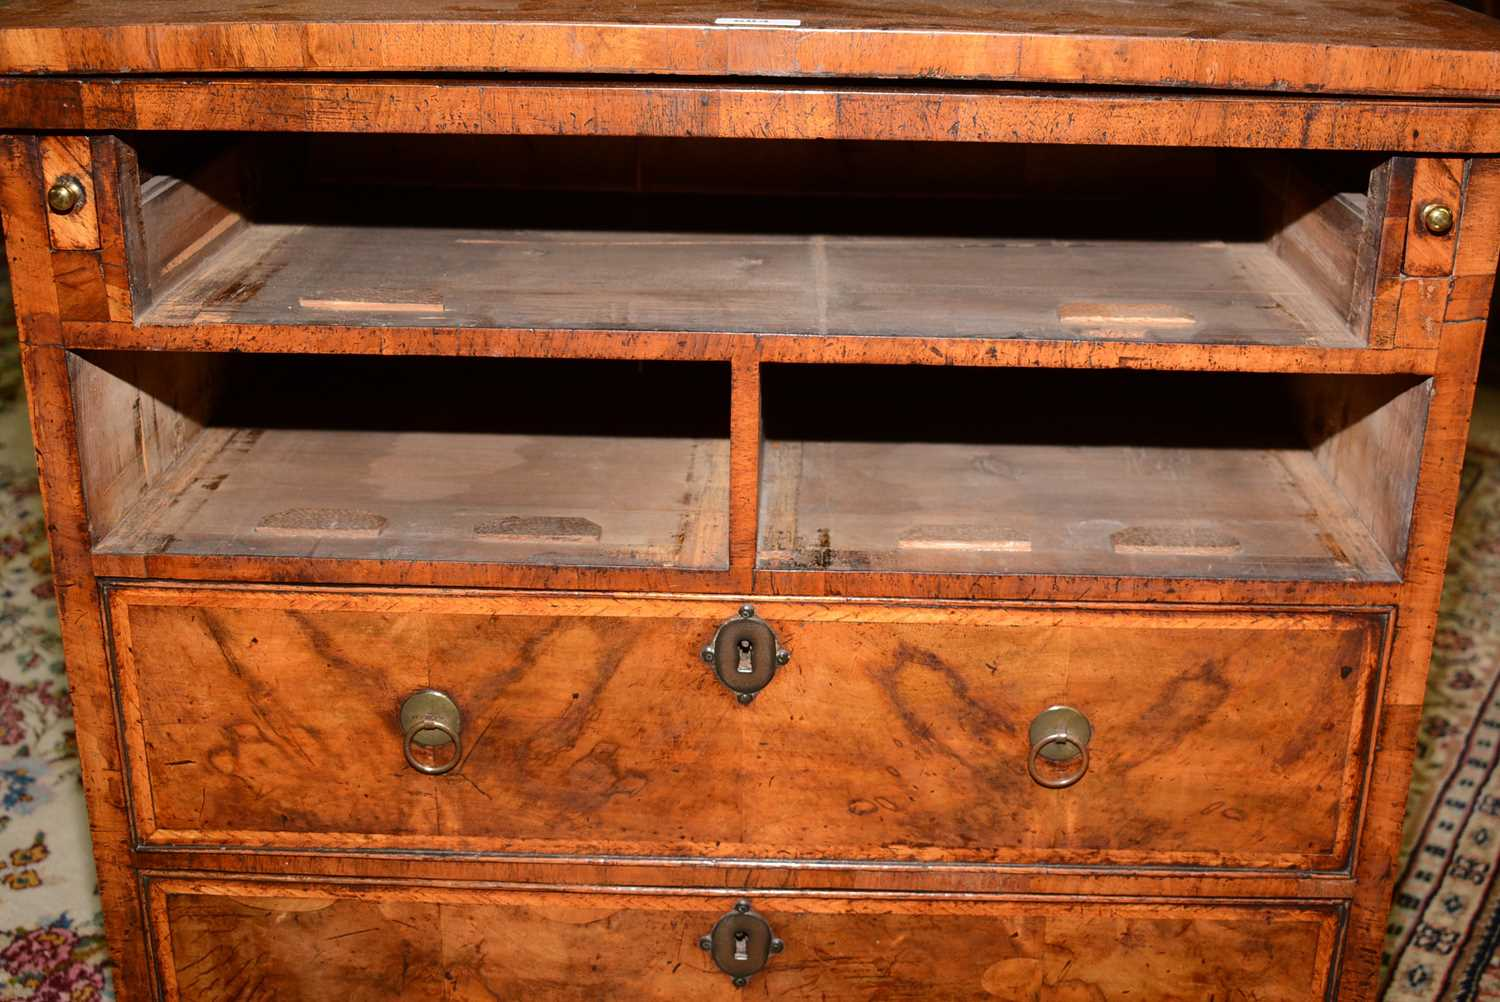 Early 18th Century walnut bachelors chest - Image 20 of 39